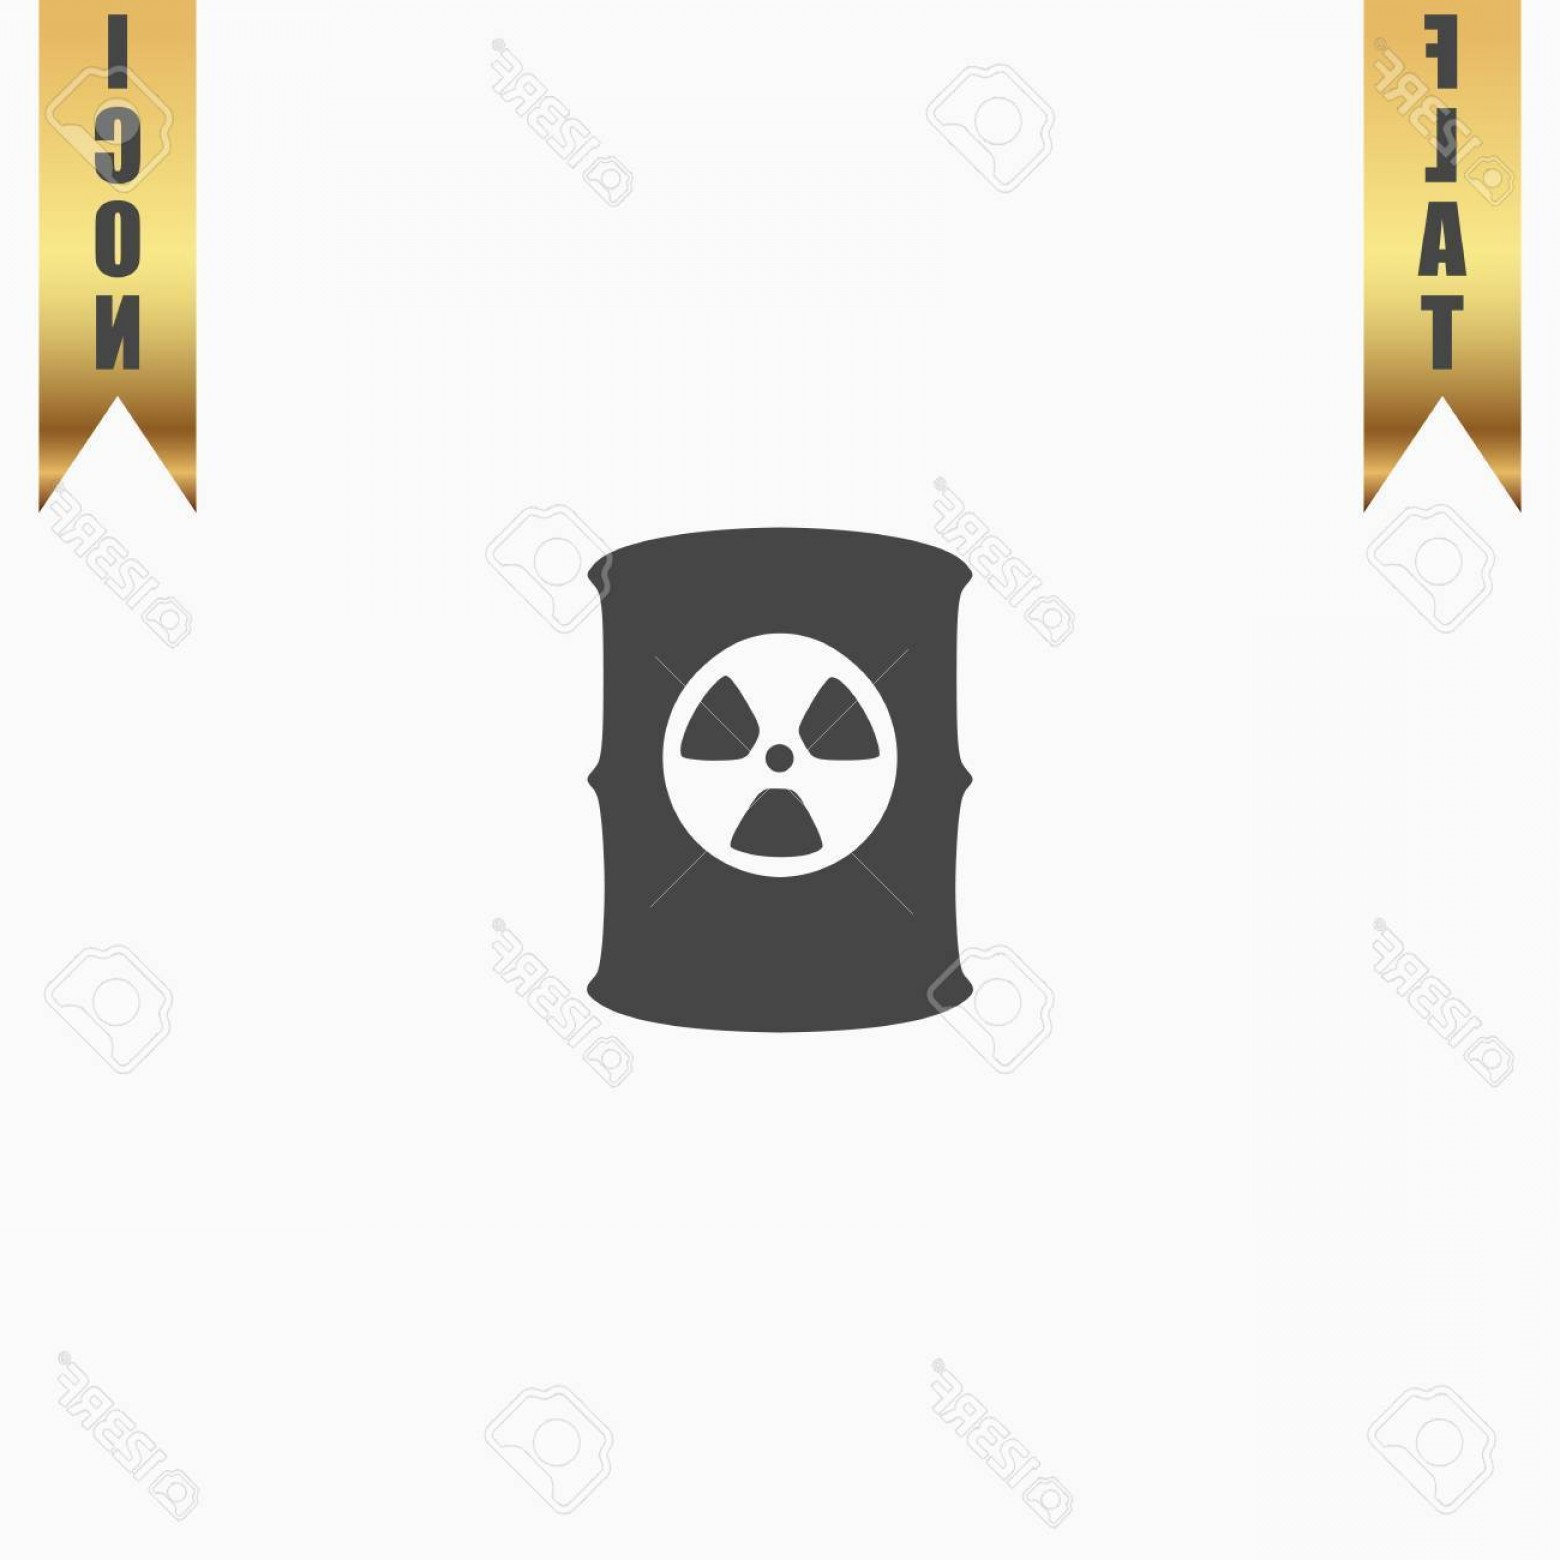 Radioactive Symbol Vector: Photostock Vector Container With Radioactive Waste Flat Icon Vector Illustration Grey Symbol On White Background With